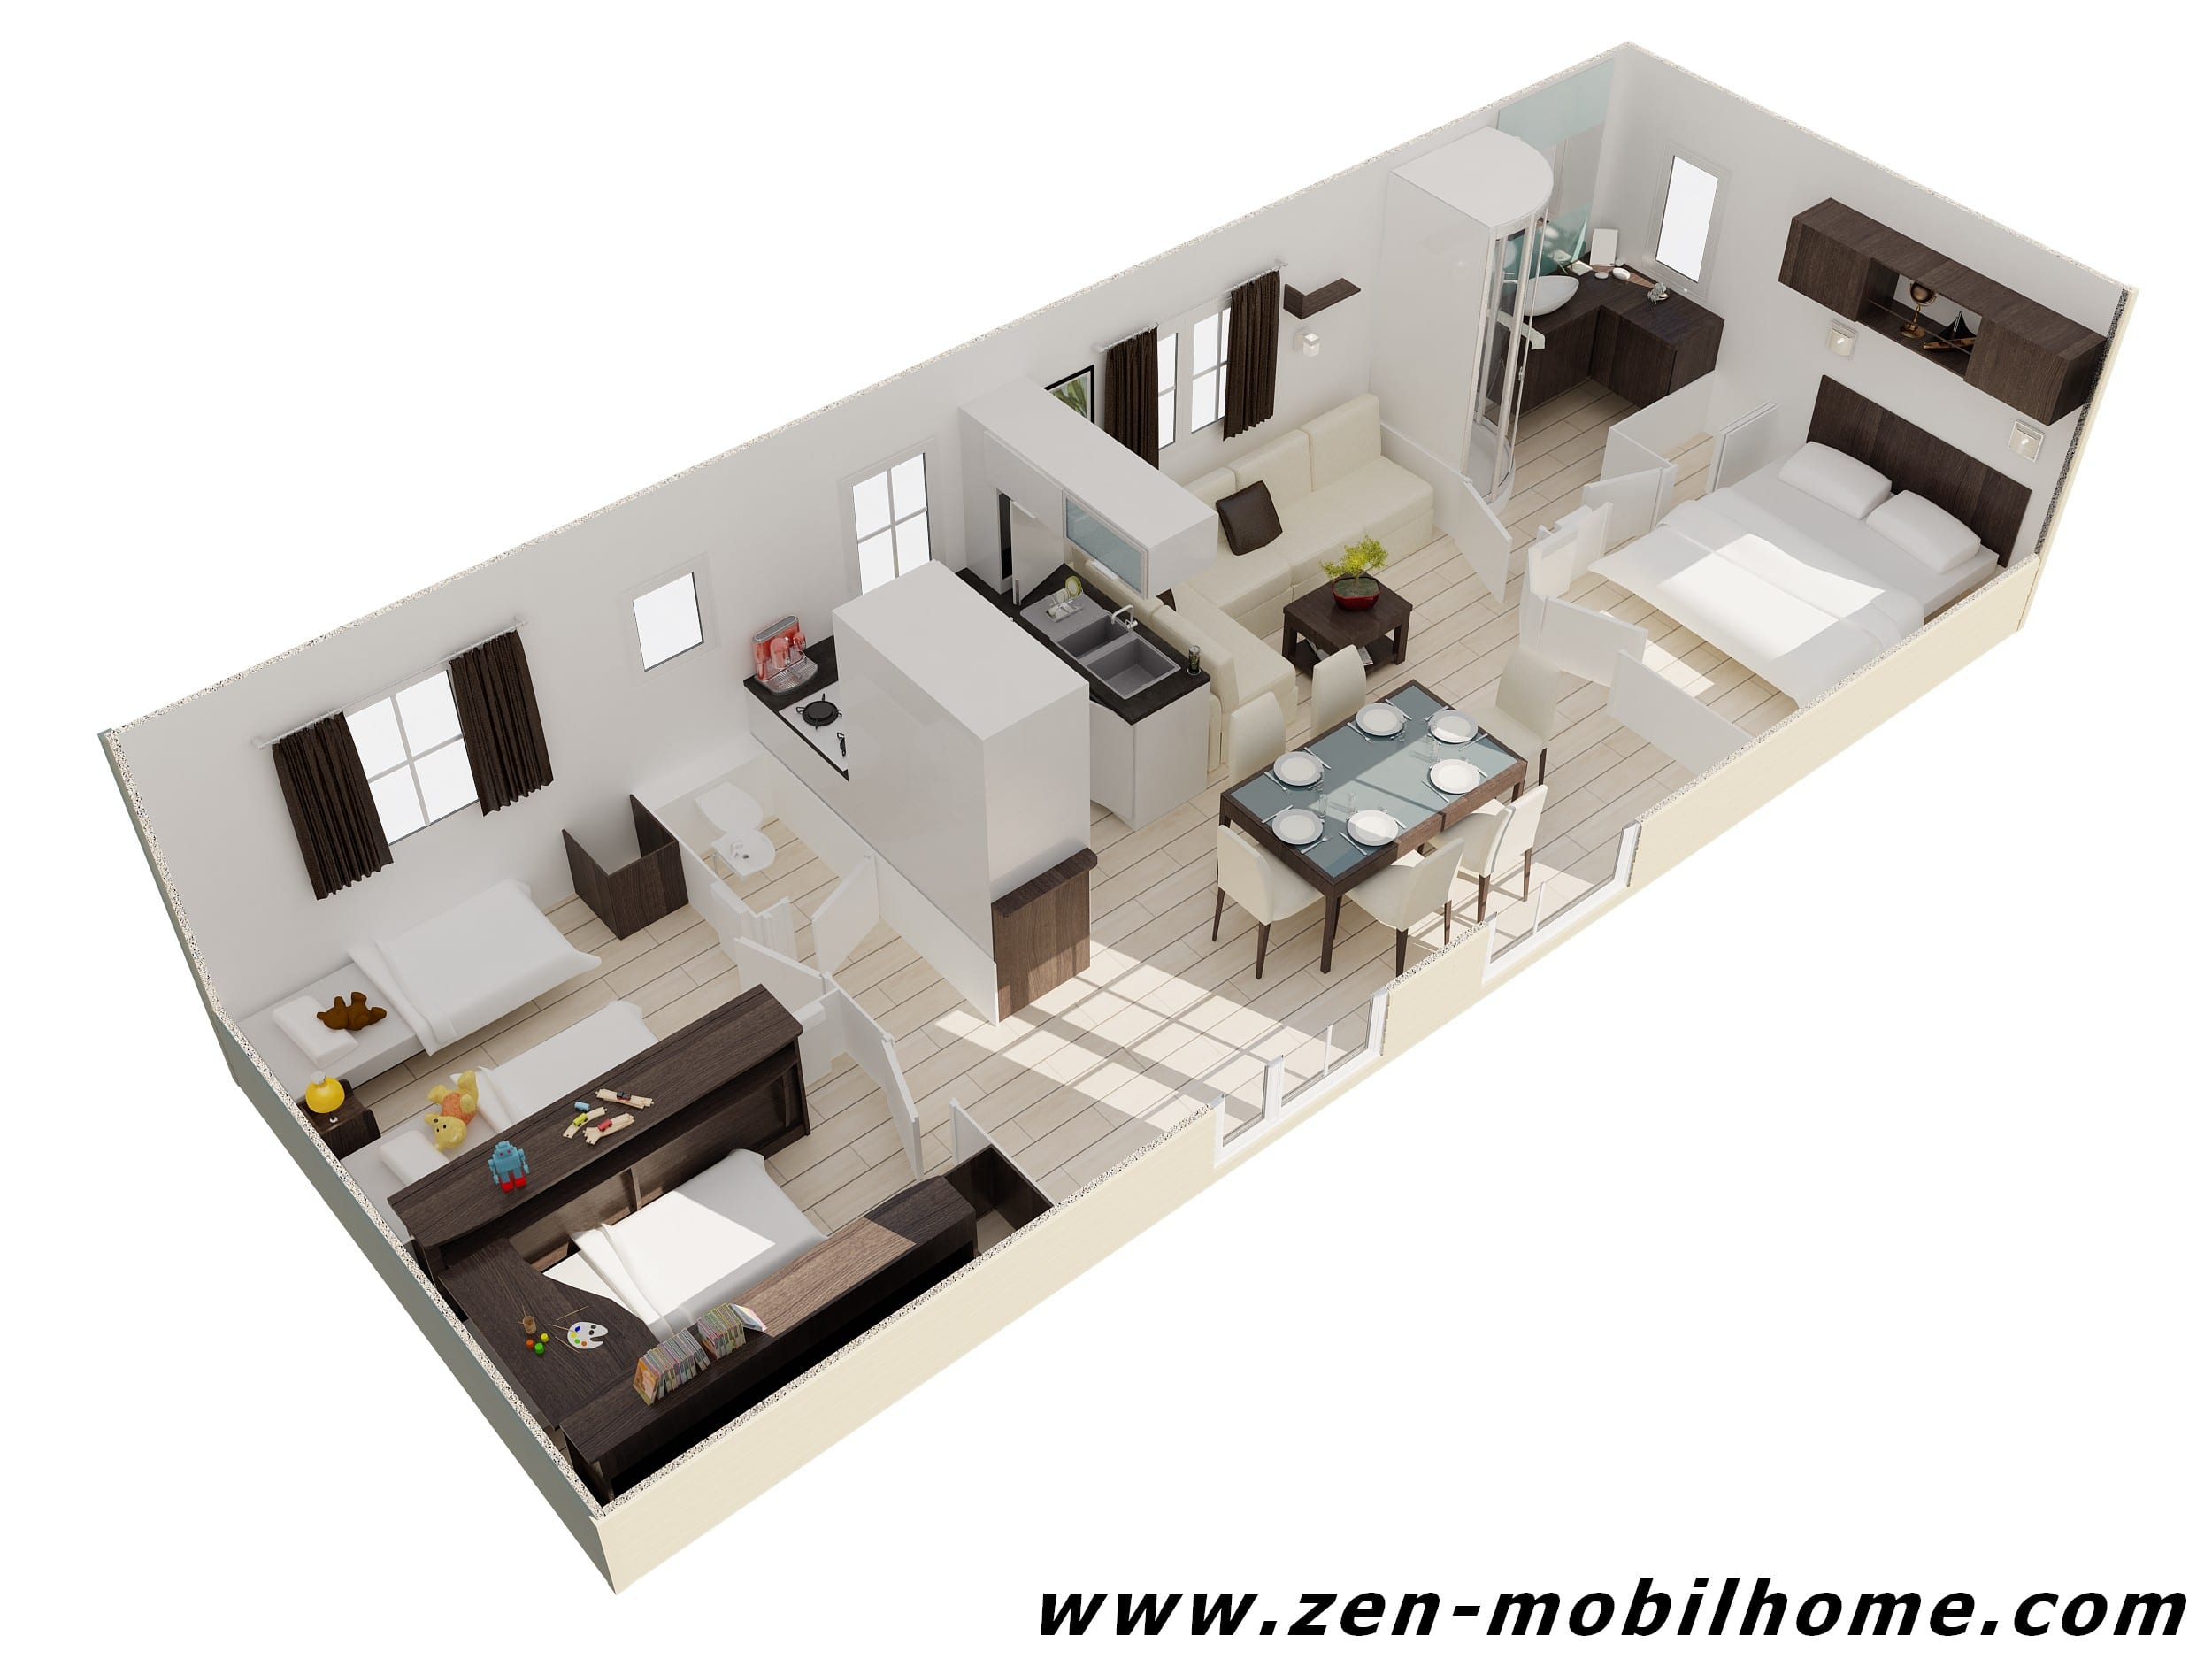 Louisiane blueberry mobil home d 39 occasion 29 000 for Mobil home louisiane 3 chambres prix